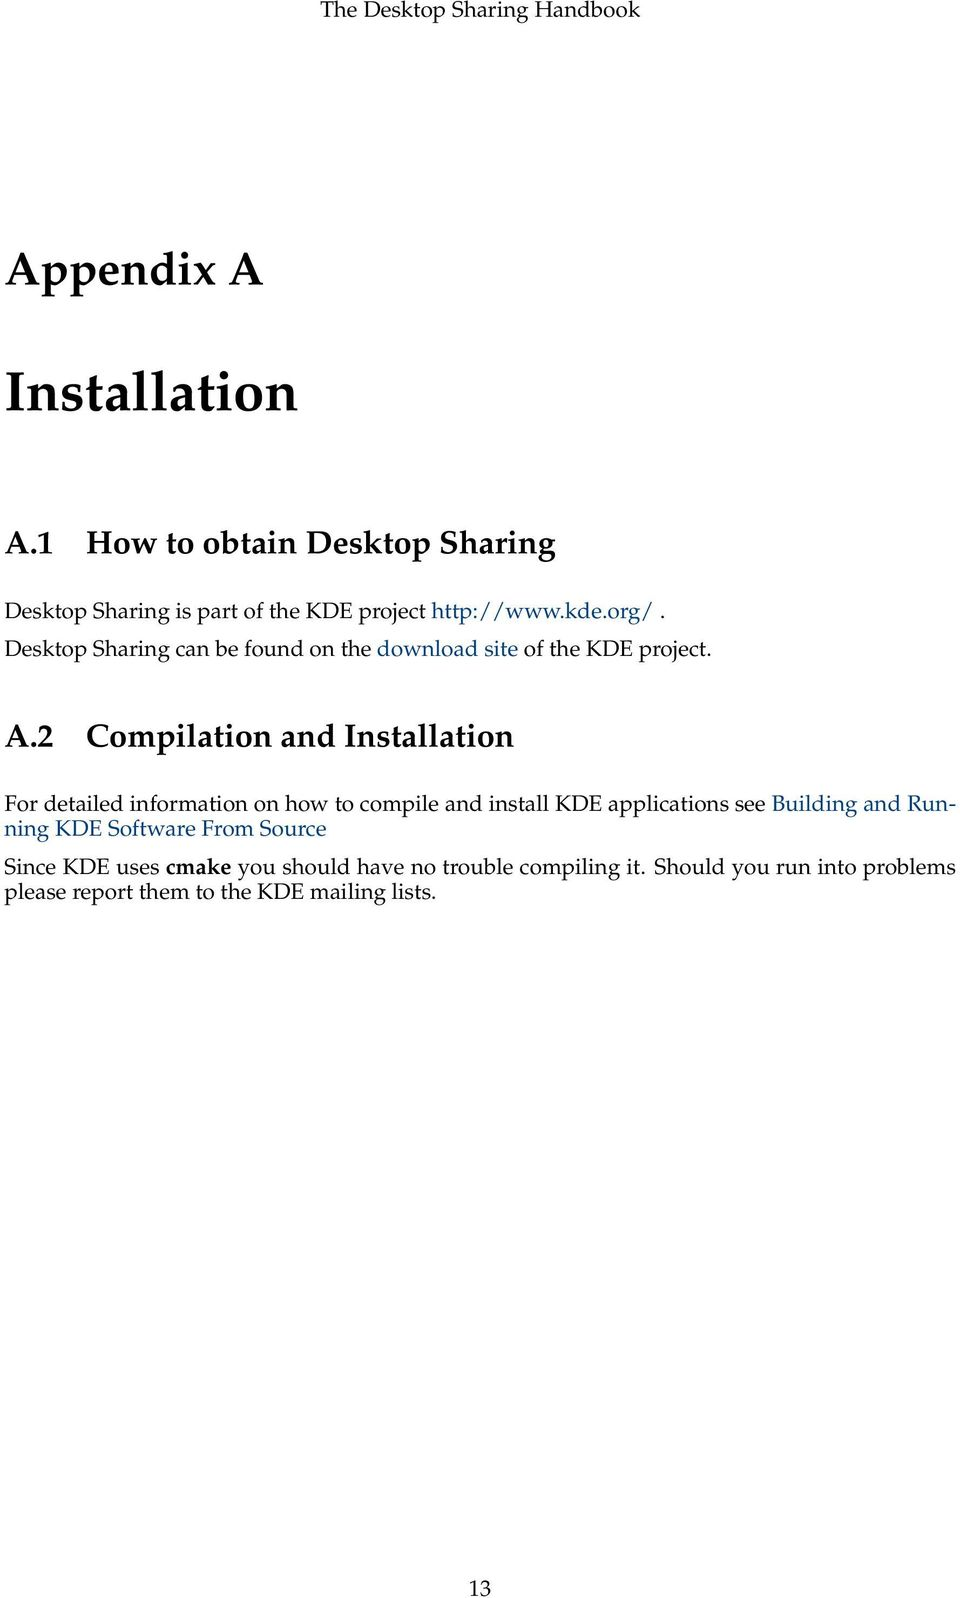 2 Compilation and Installation For detailed information on how to compile and install KDE applications see Building and